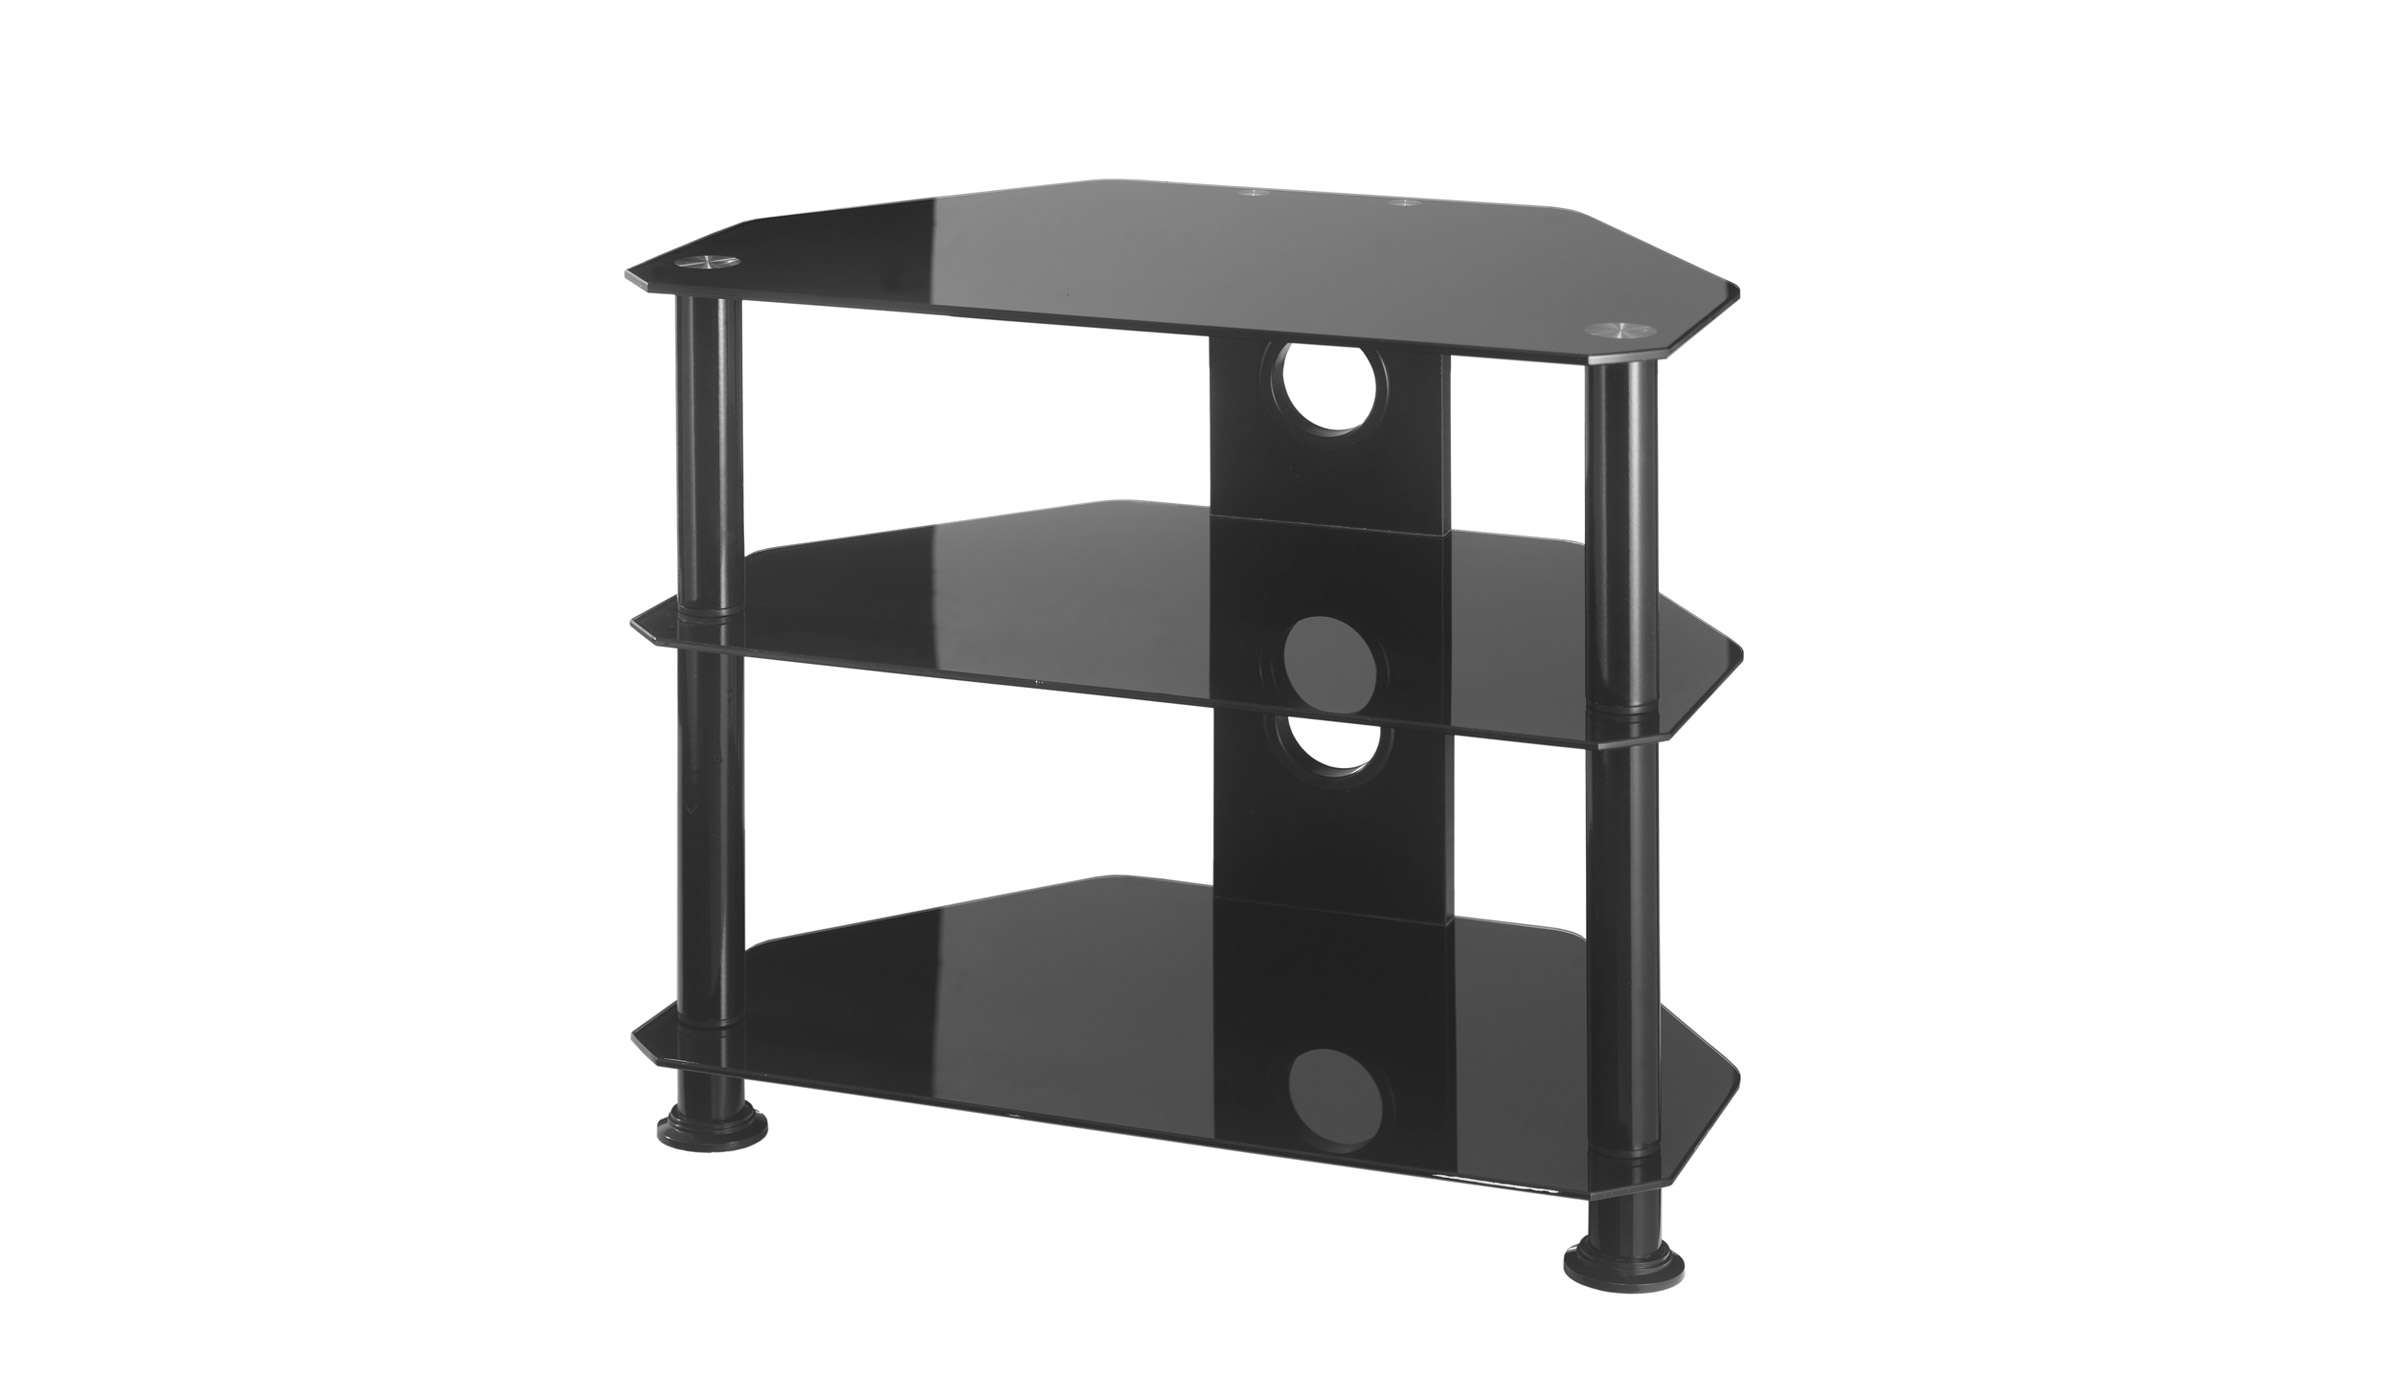 Small Glass Corner Tv Stand Up To 26 Inch Tv | Mmt Db600 Regarding Black Glass Tv Cabinets (View 3 of 20)